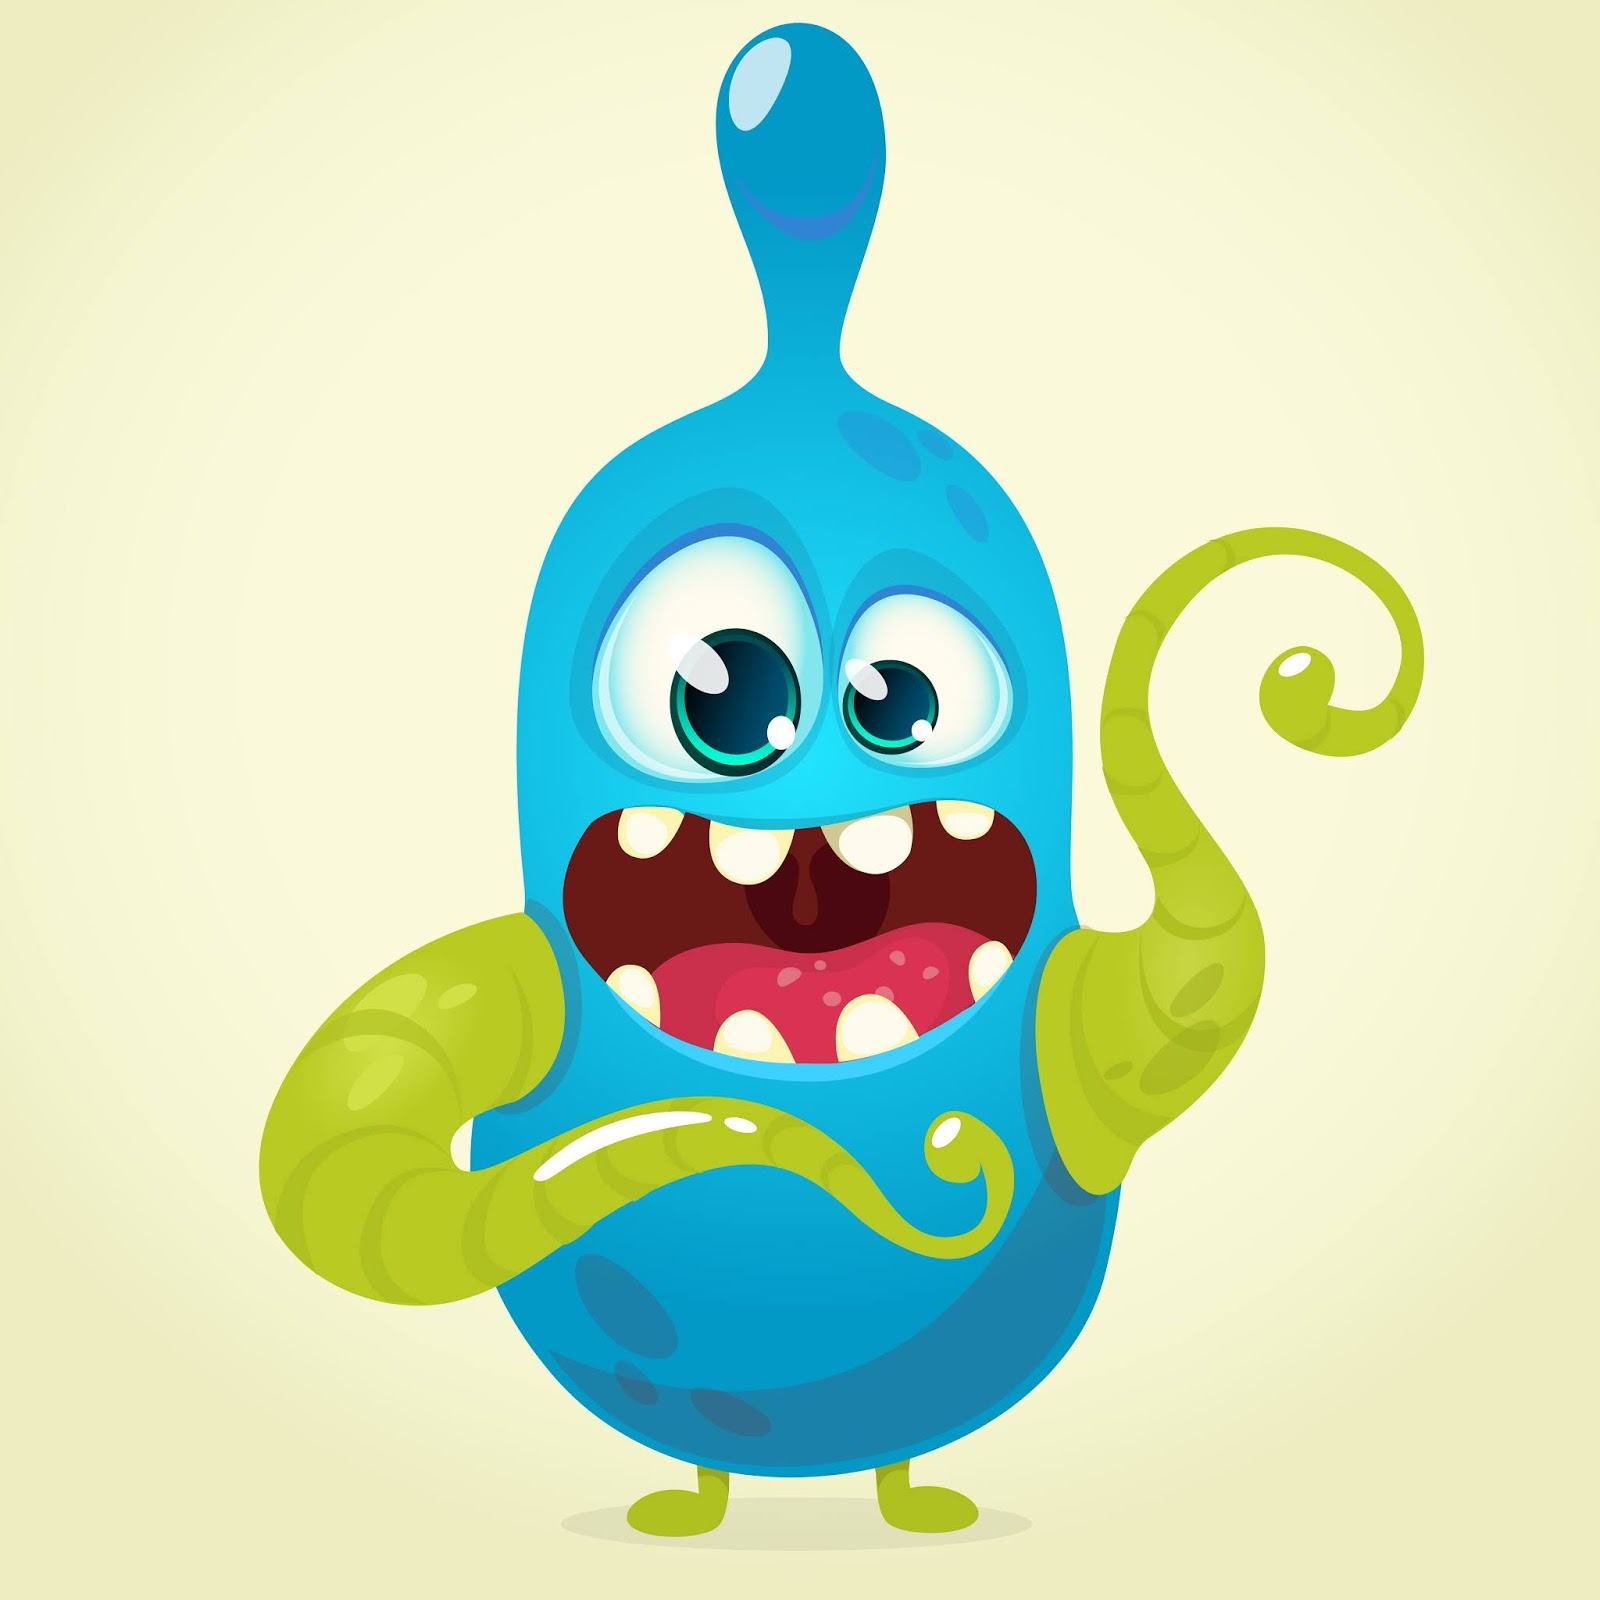 Funny Cartoon Monster Halloween Style Free Download Vector CDR, AI, EPS and PNG Formats